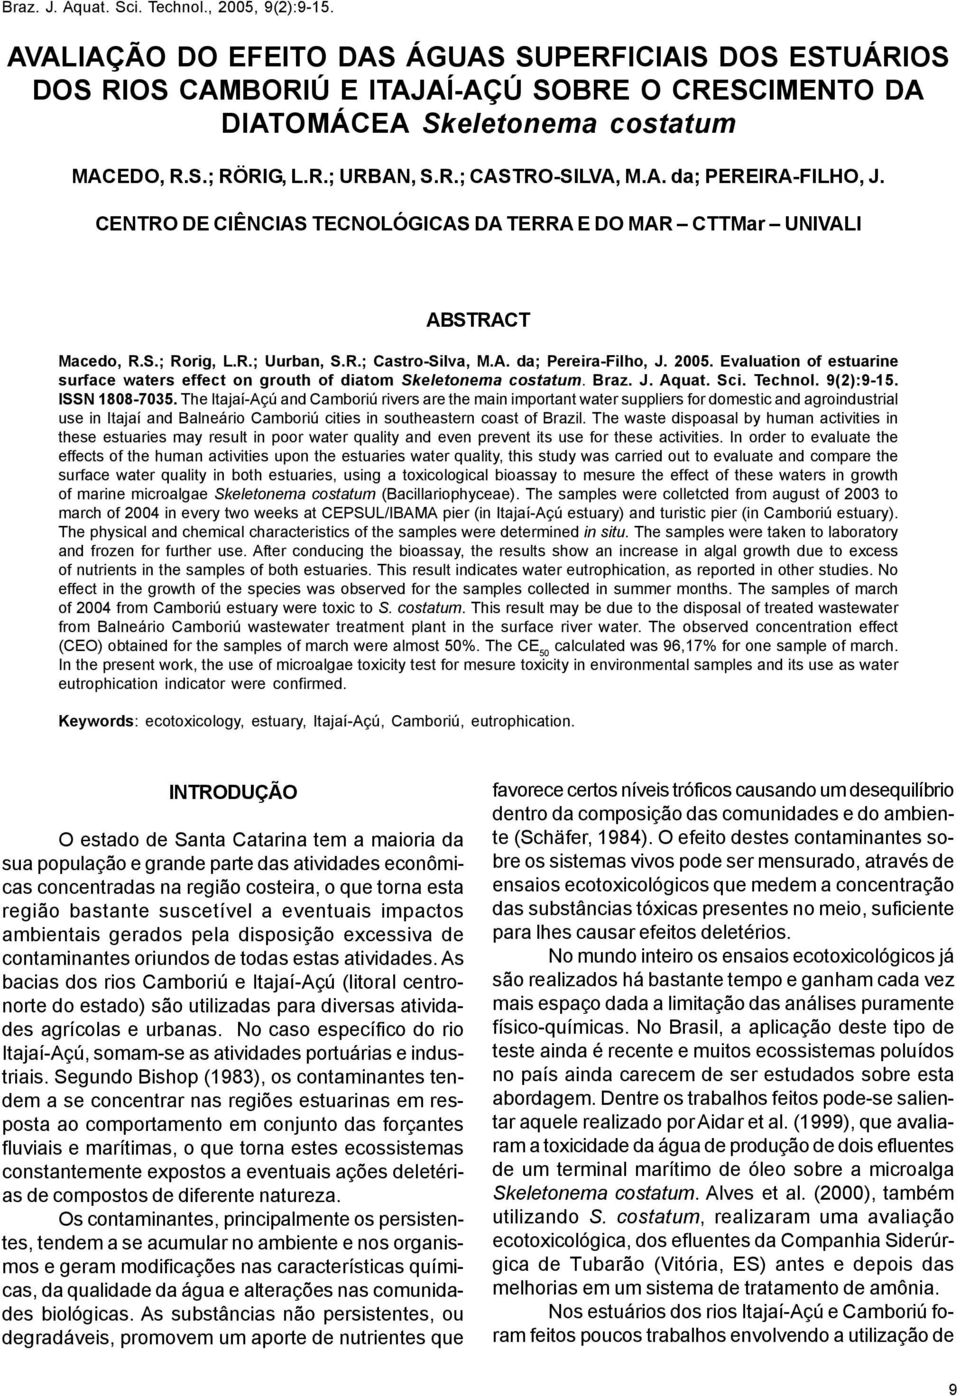 A. da; Pereira-Filho, J. 200. Evaluation of estuarine surface waters effect on grouth of diatom Skeletonema costatum. Braz. J. Aquat. Sci. Technol. 9(2):9-1. ISSN 1808-703.